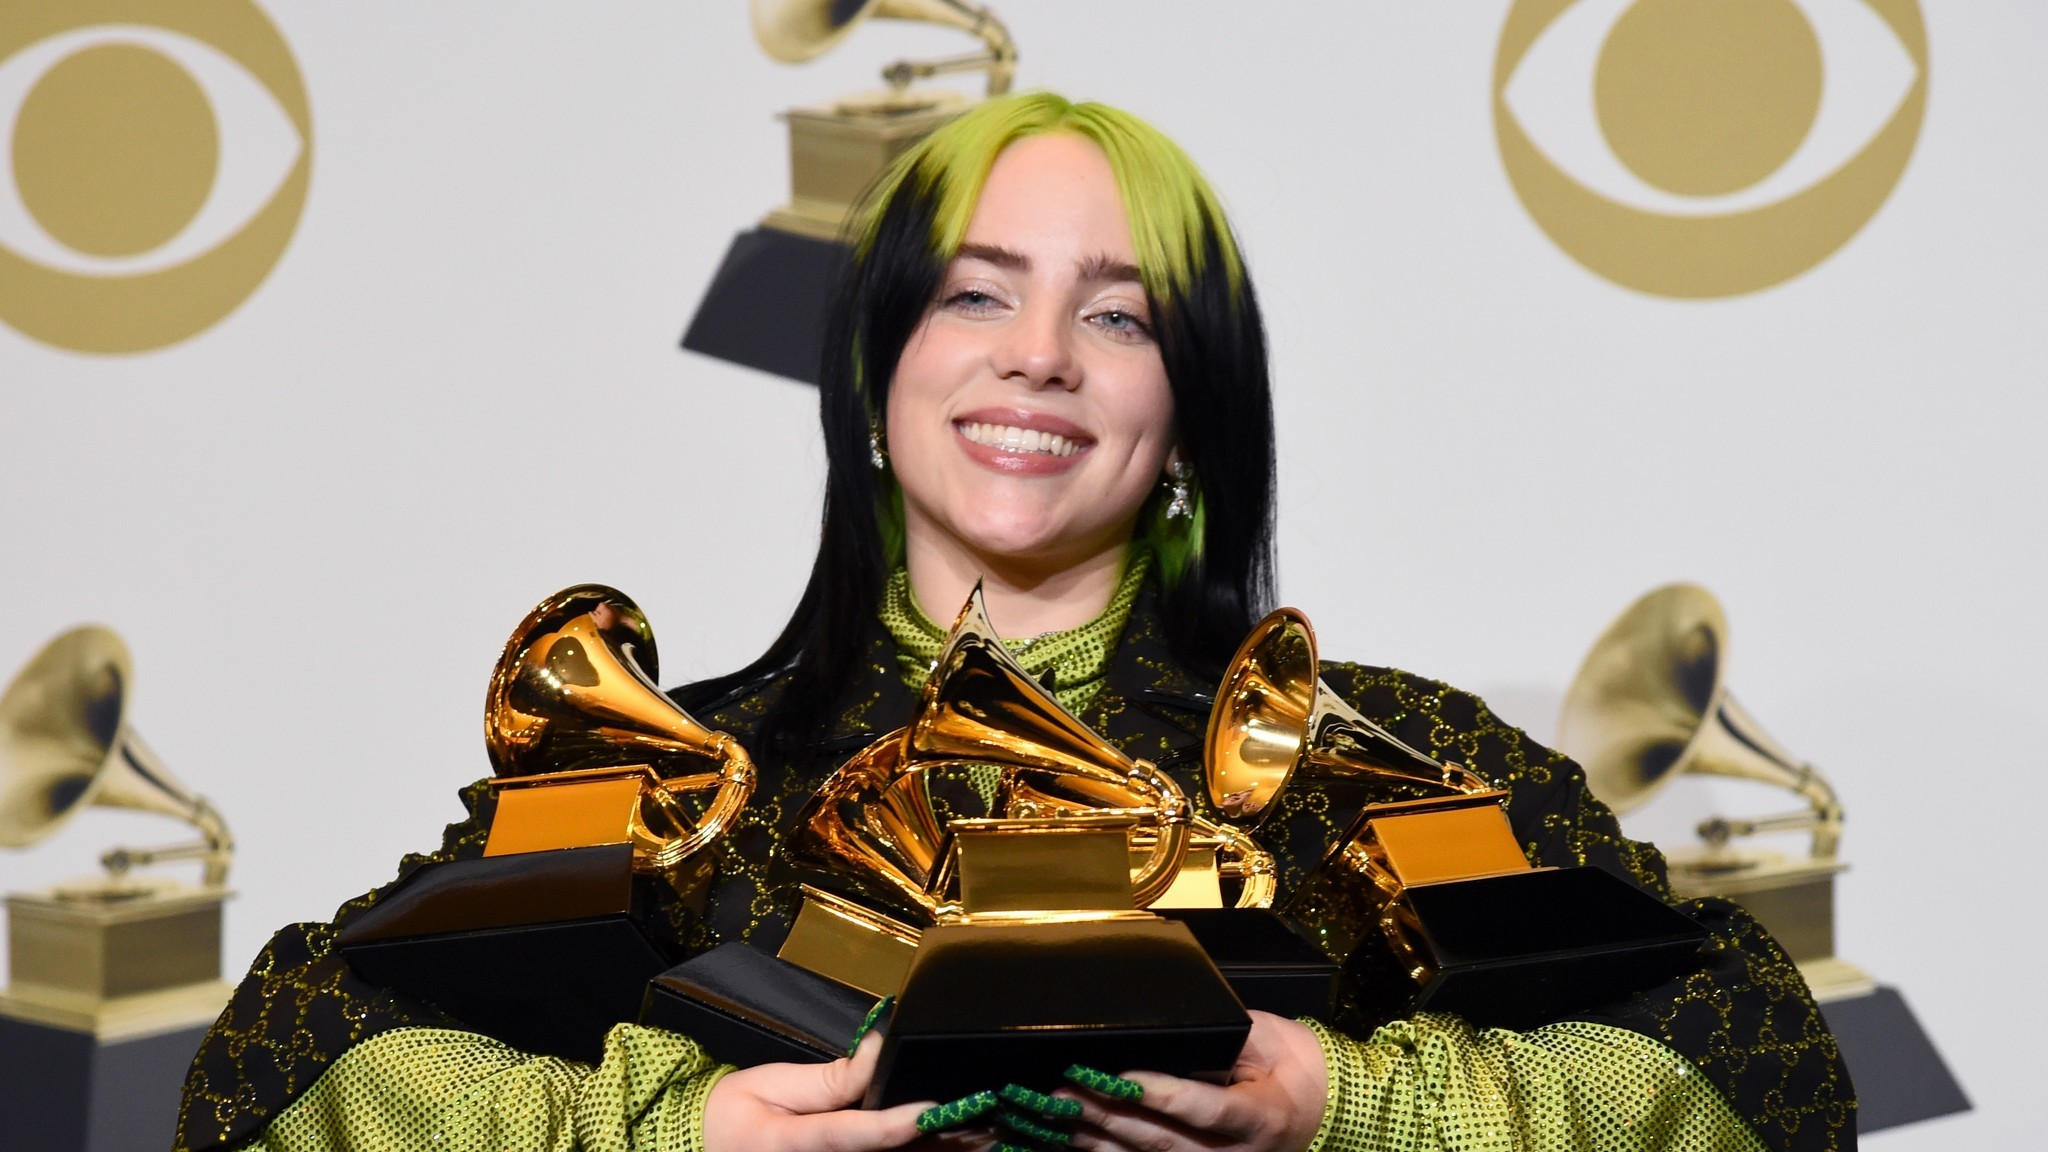 SEE IT: Billie Eilish says 'please don't be me' before she's announced winner of Album of the Year at Grammys